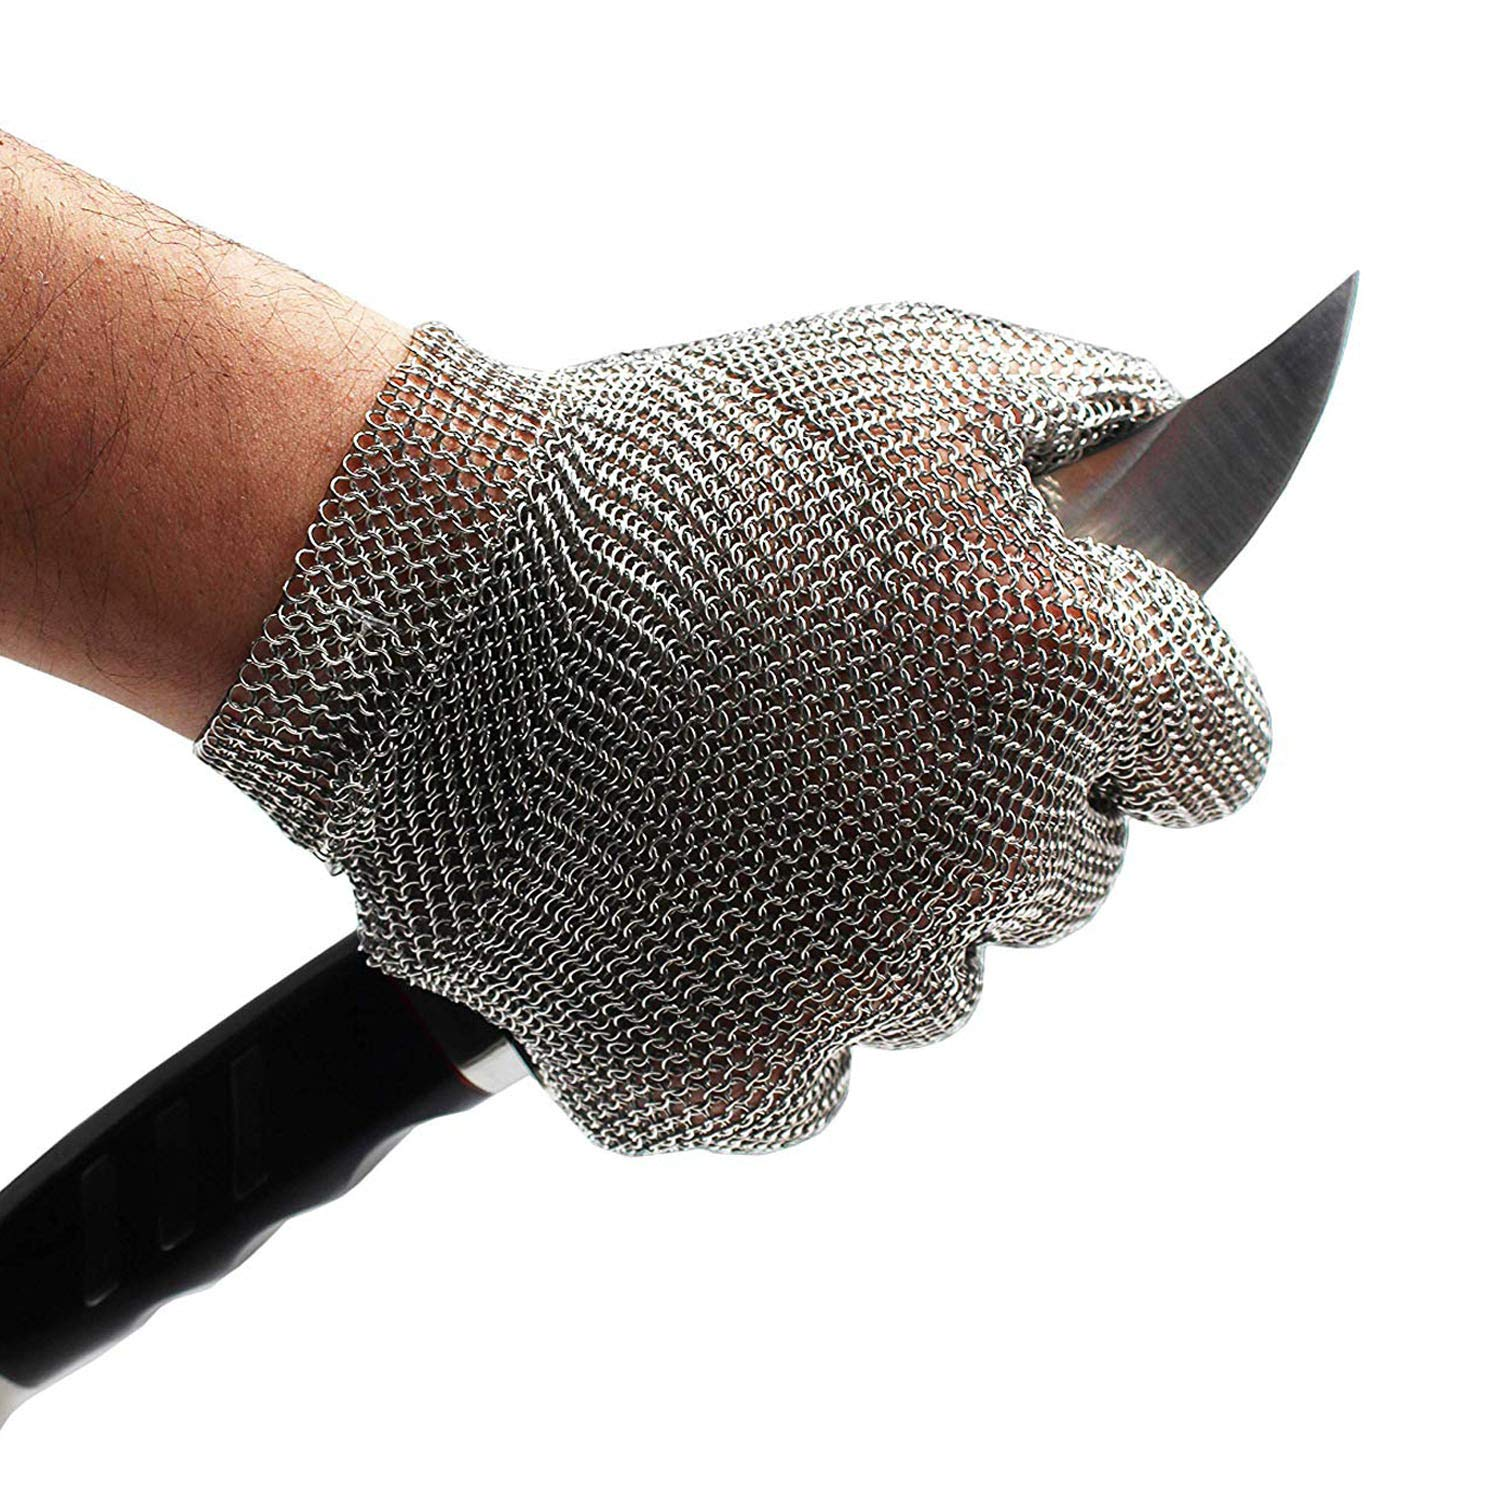 Schwer Stainless Steel Metal Mesh Chainmail Cut Resistant Glove for Food Handling, Meat Cutting Butchers Slicing Chopping Restaurant Work Safety(M) by Schwer (Image #1)